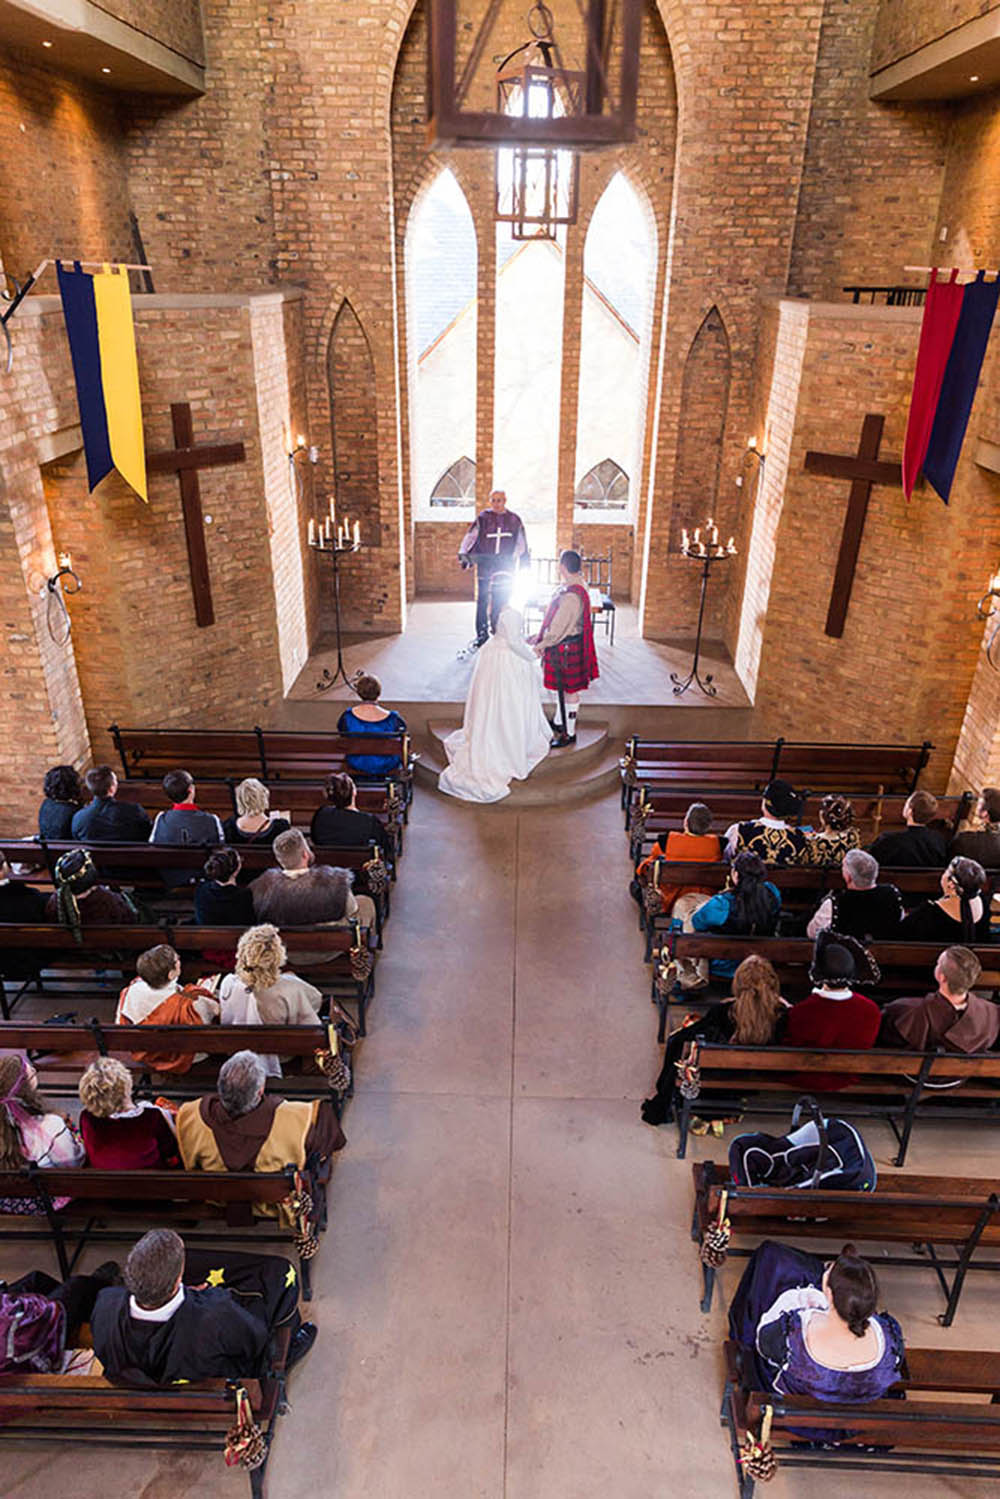 medieval-themed-wedding-medieval-wedding-dgr-photography-castle-wedding-64